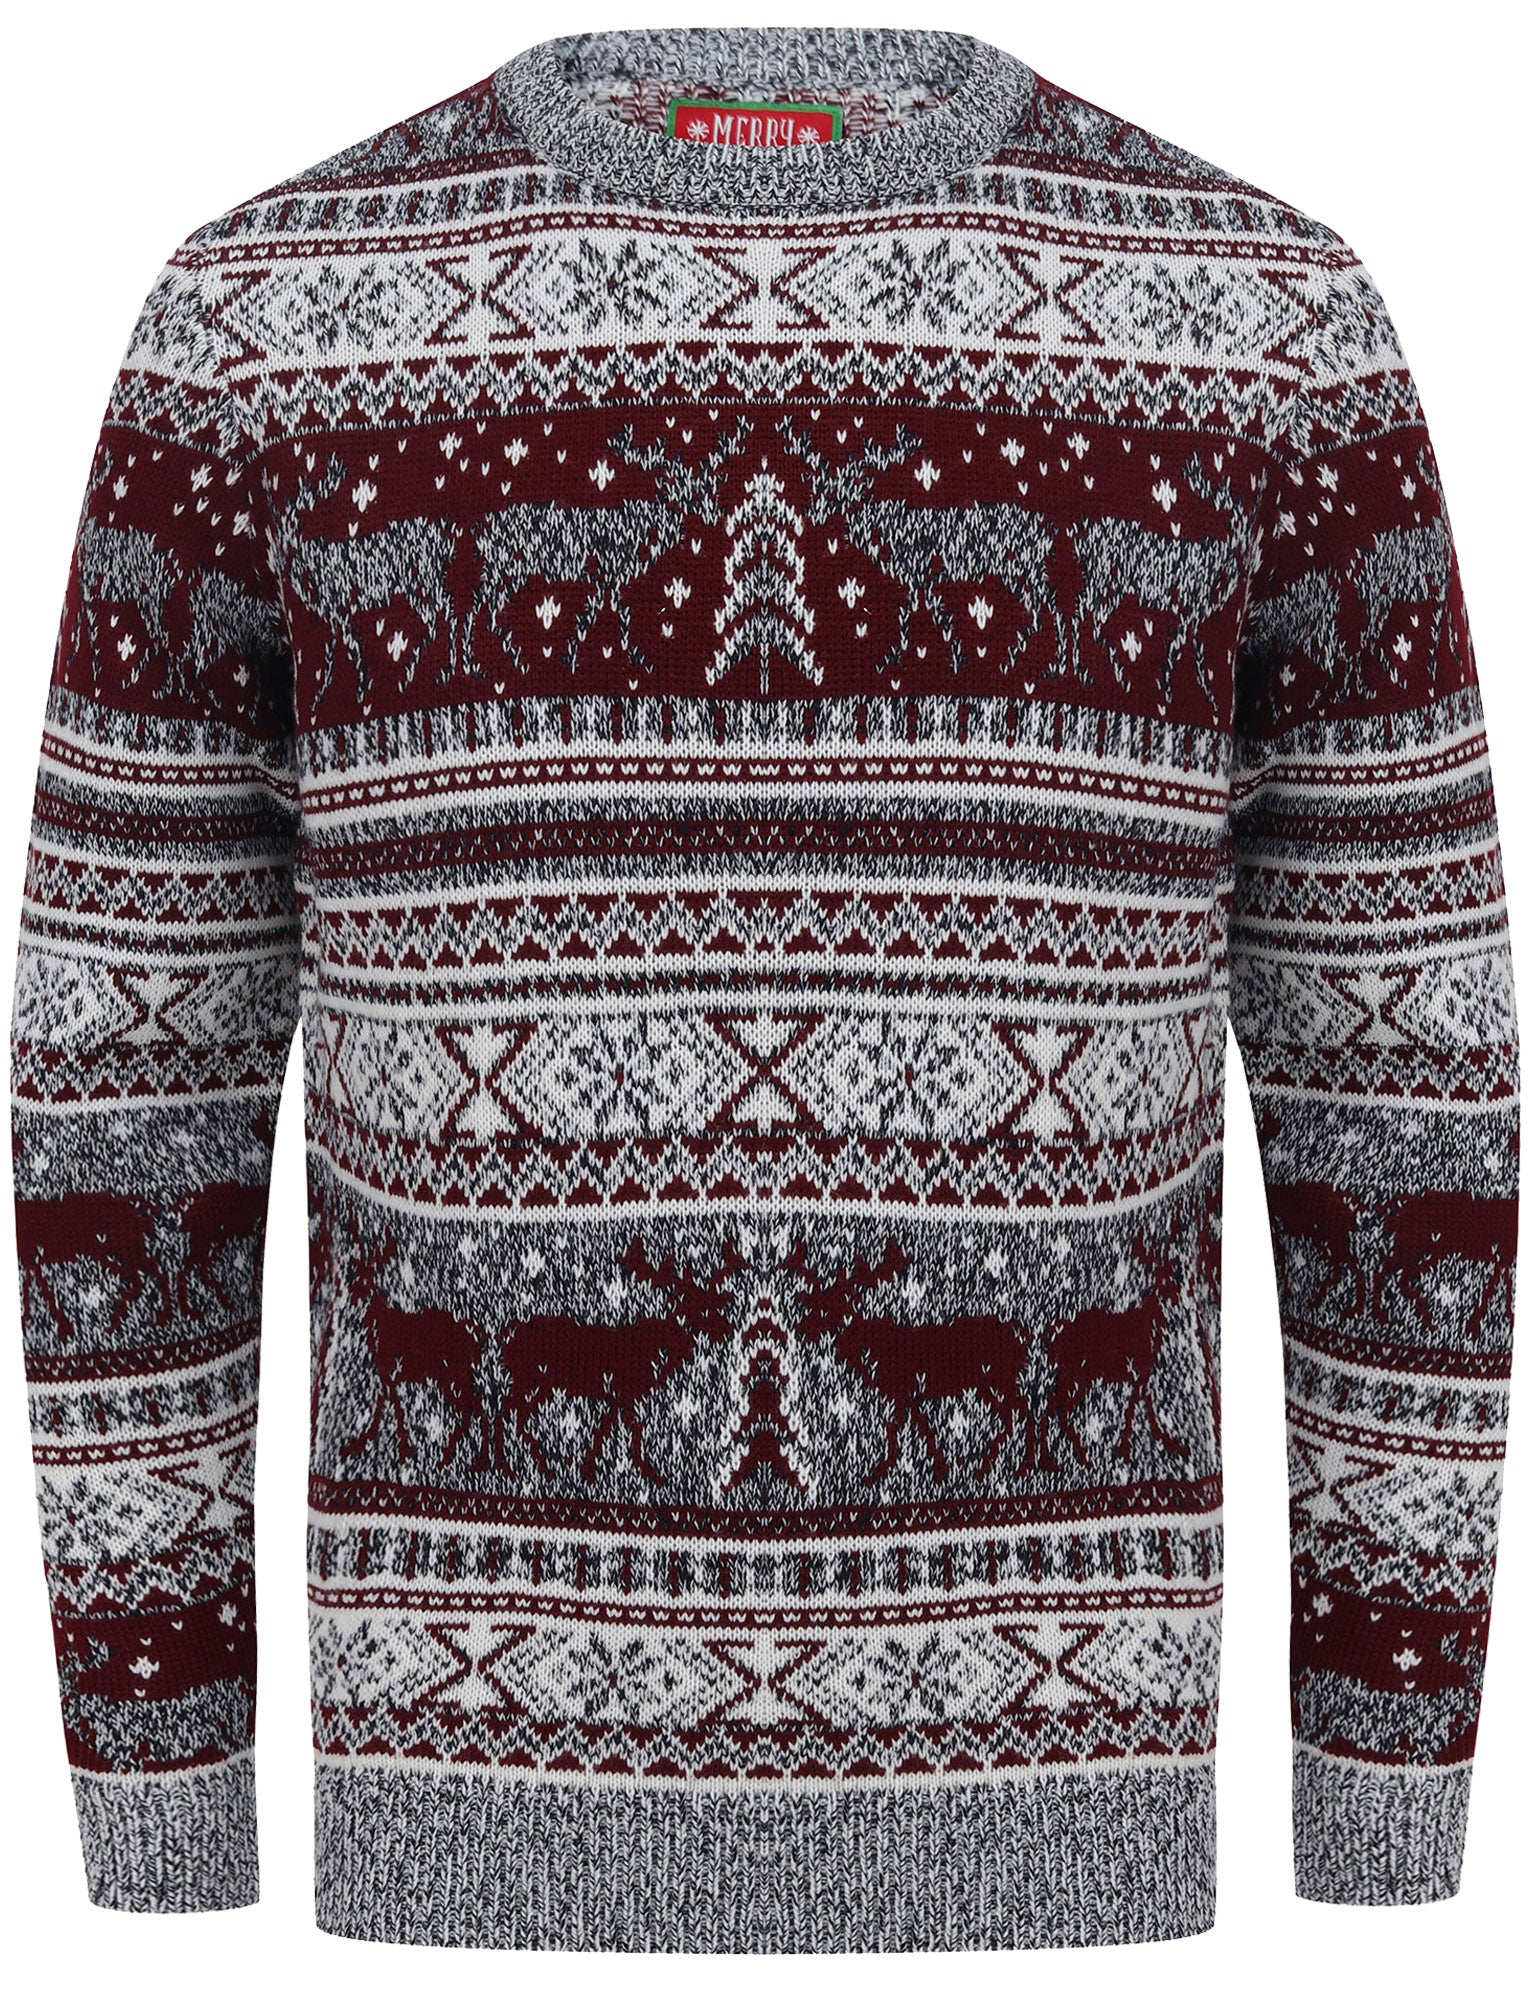 Men's Vintage Sweaters, Retro Jumpers 1920s to 1980s Jumpers Reynisfjall Jacquard Nordic Fairisle Christmas Jumper in Oxblood  Merry Christmas  XXL - Tokyo Laundry £19.99 AT vintagedancer.com